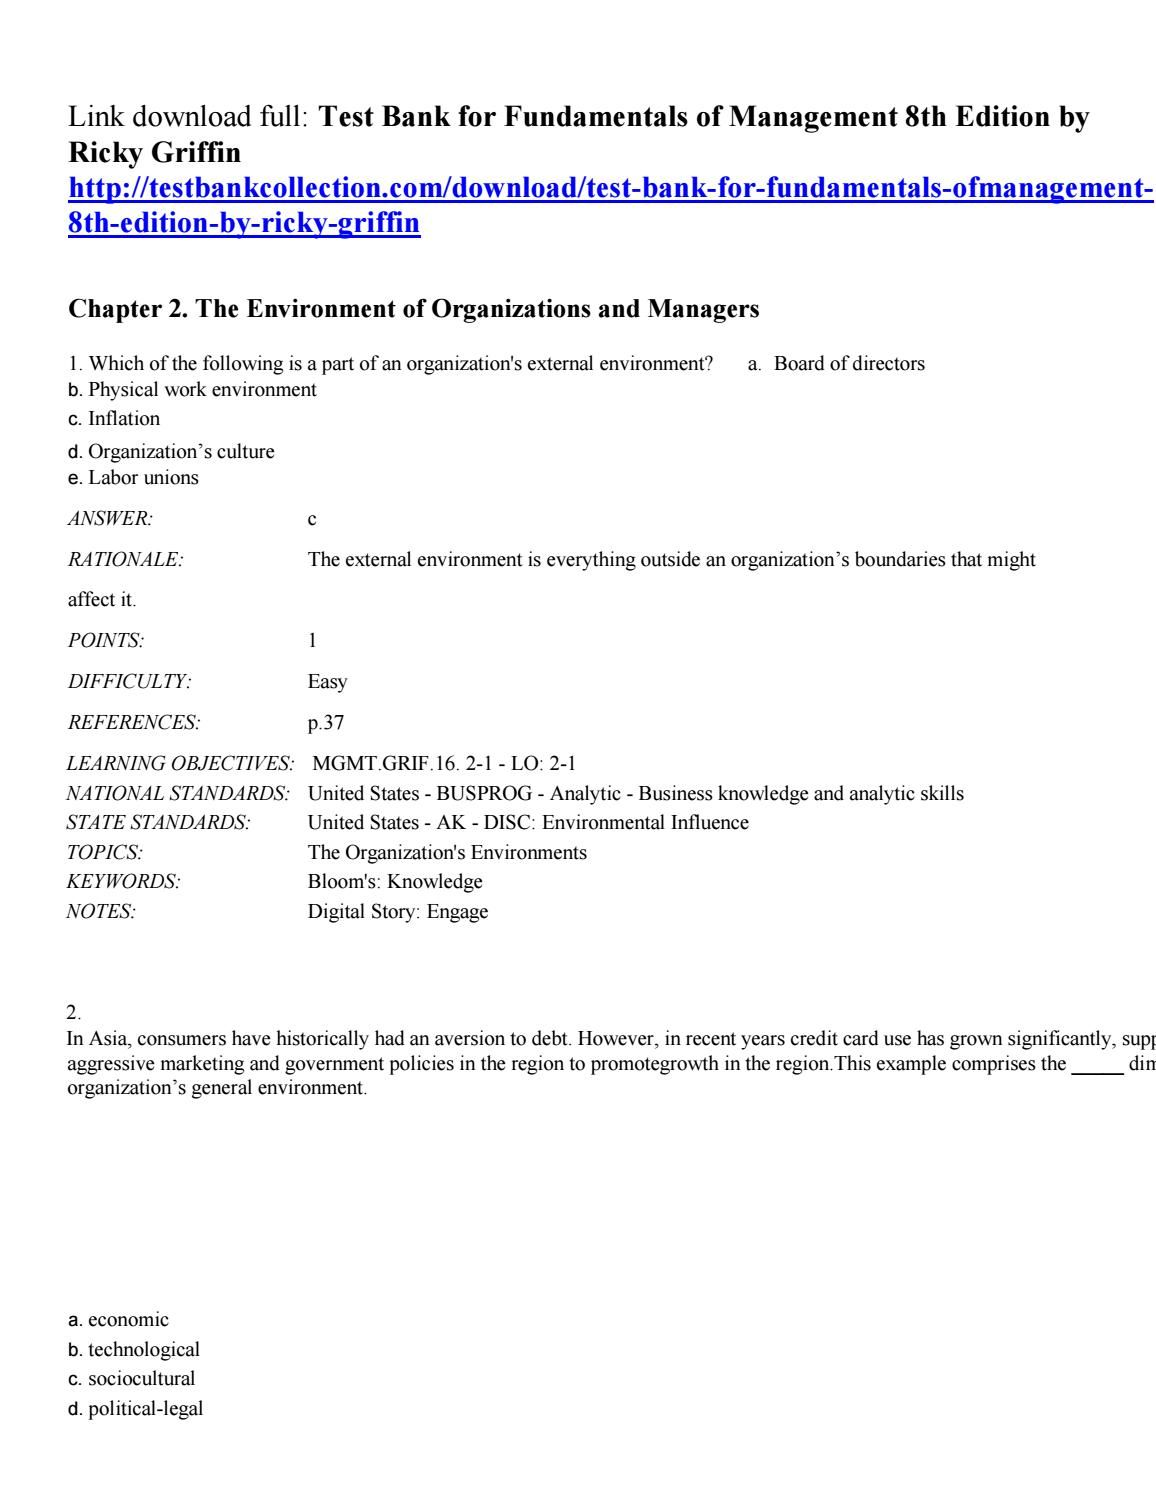 Pin On Test Bank For Fundamentals Of Management 8th Edition By Ricky Griffin